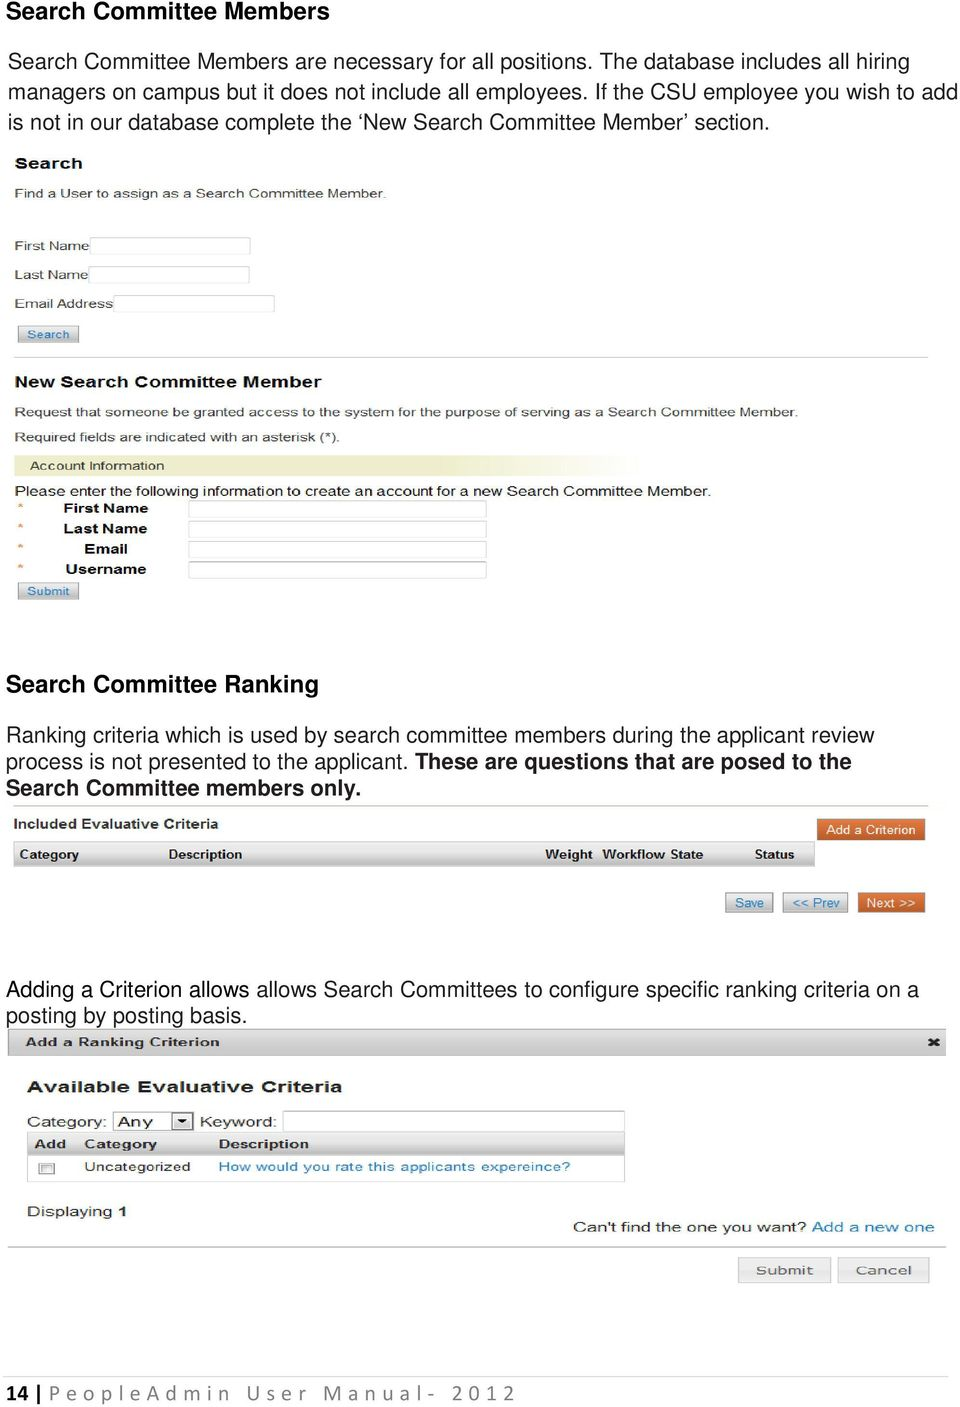 If the CSU employee you wish to add is not in our database complete the New Search Committee Member section.